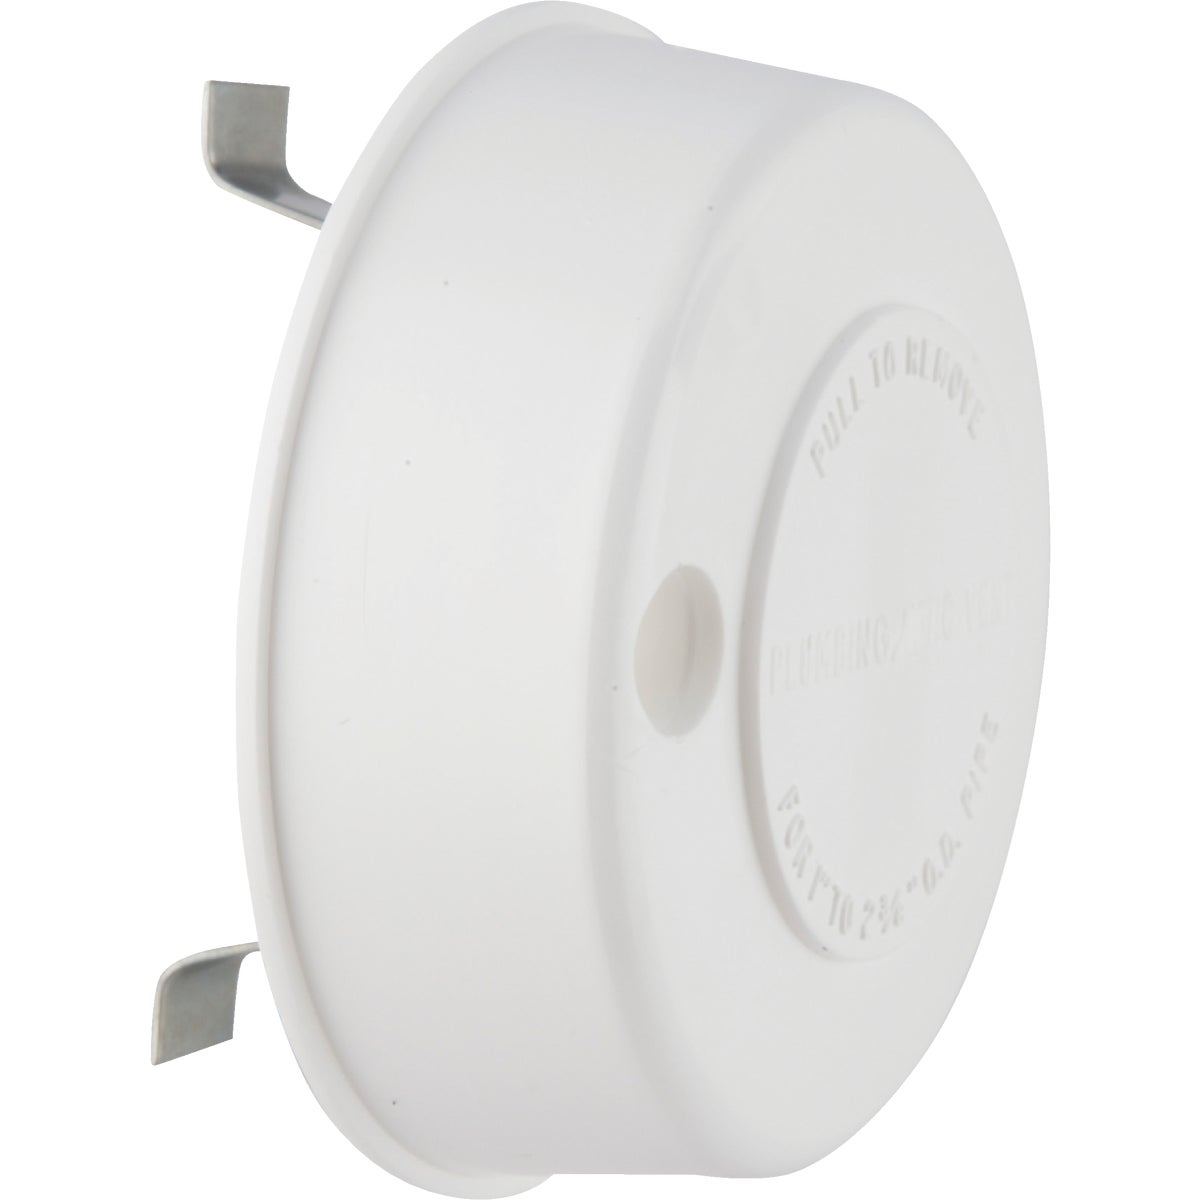 WHITE PLUMBING VENT CAP - 40034 by Camco Mfg.